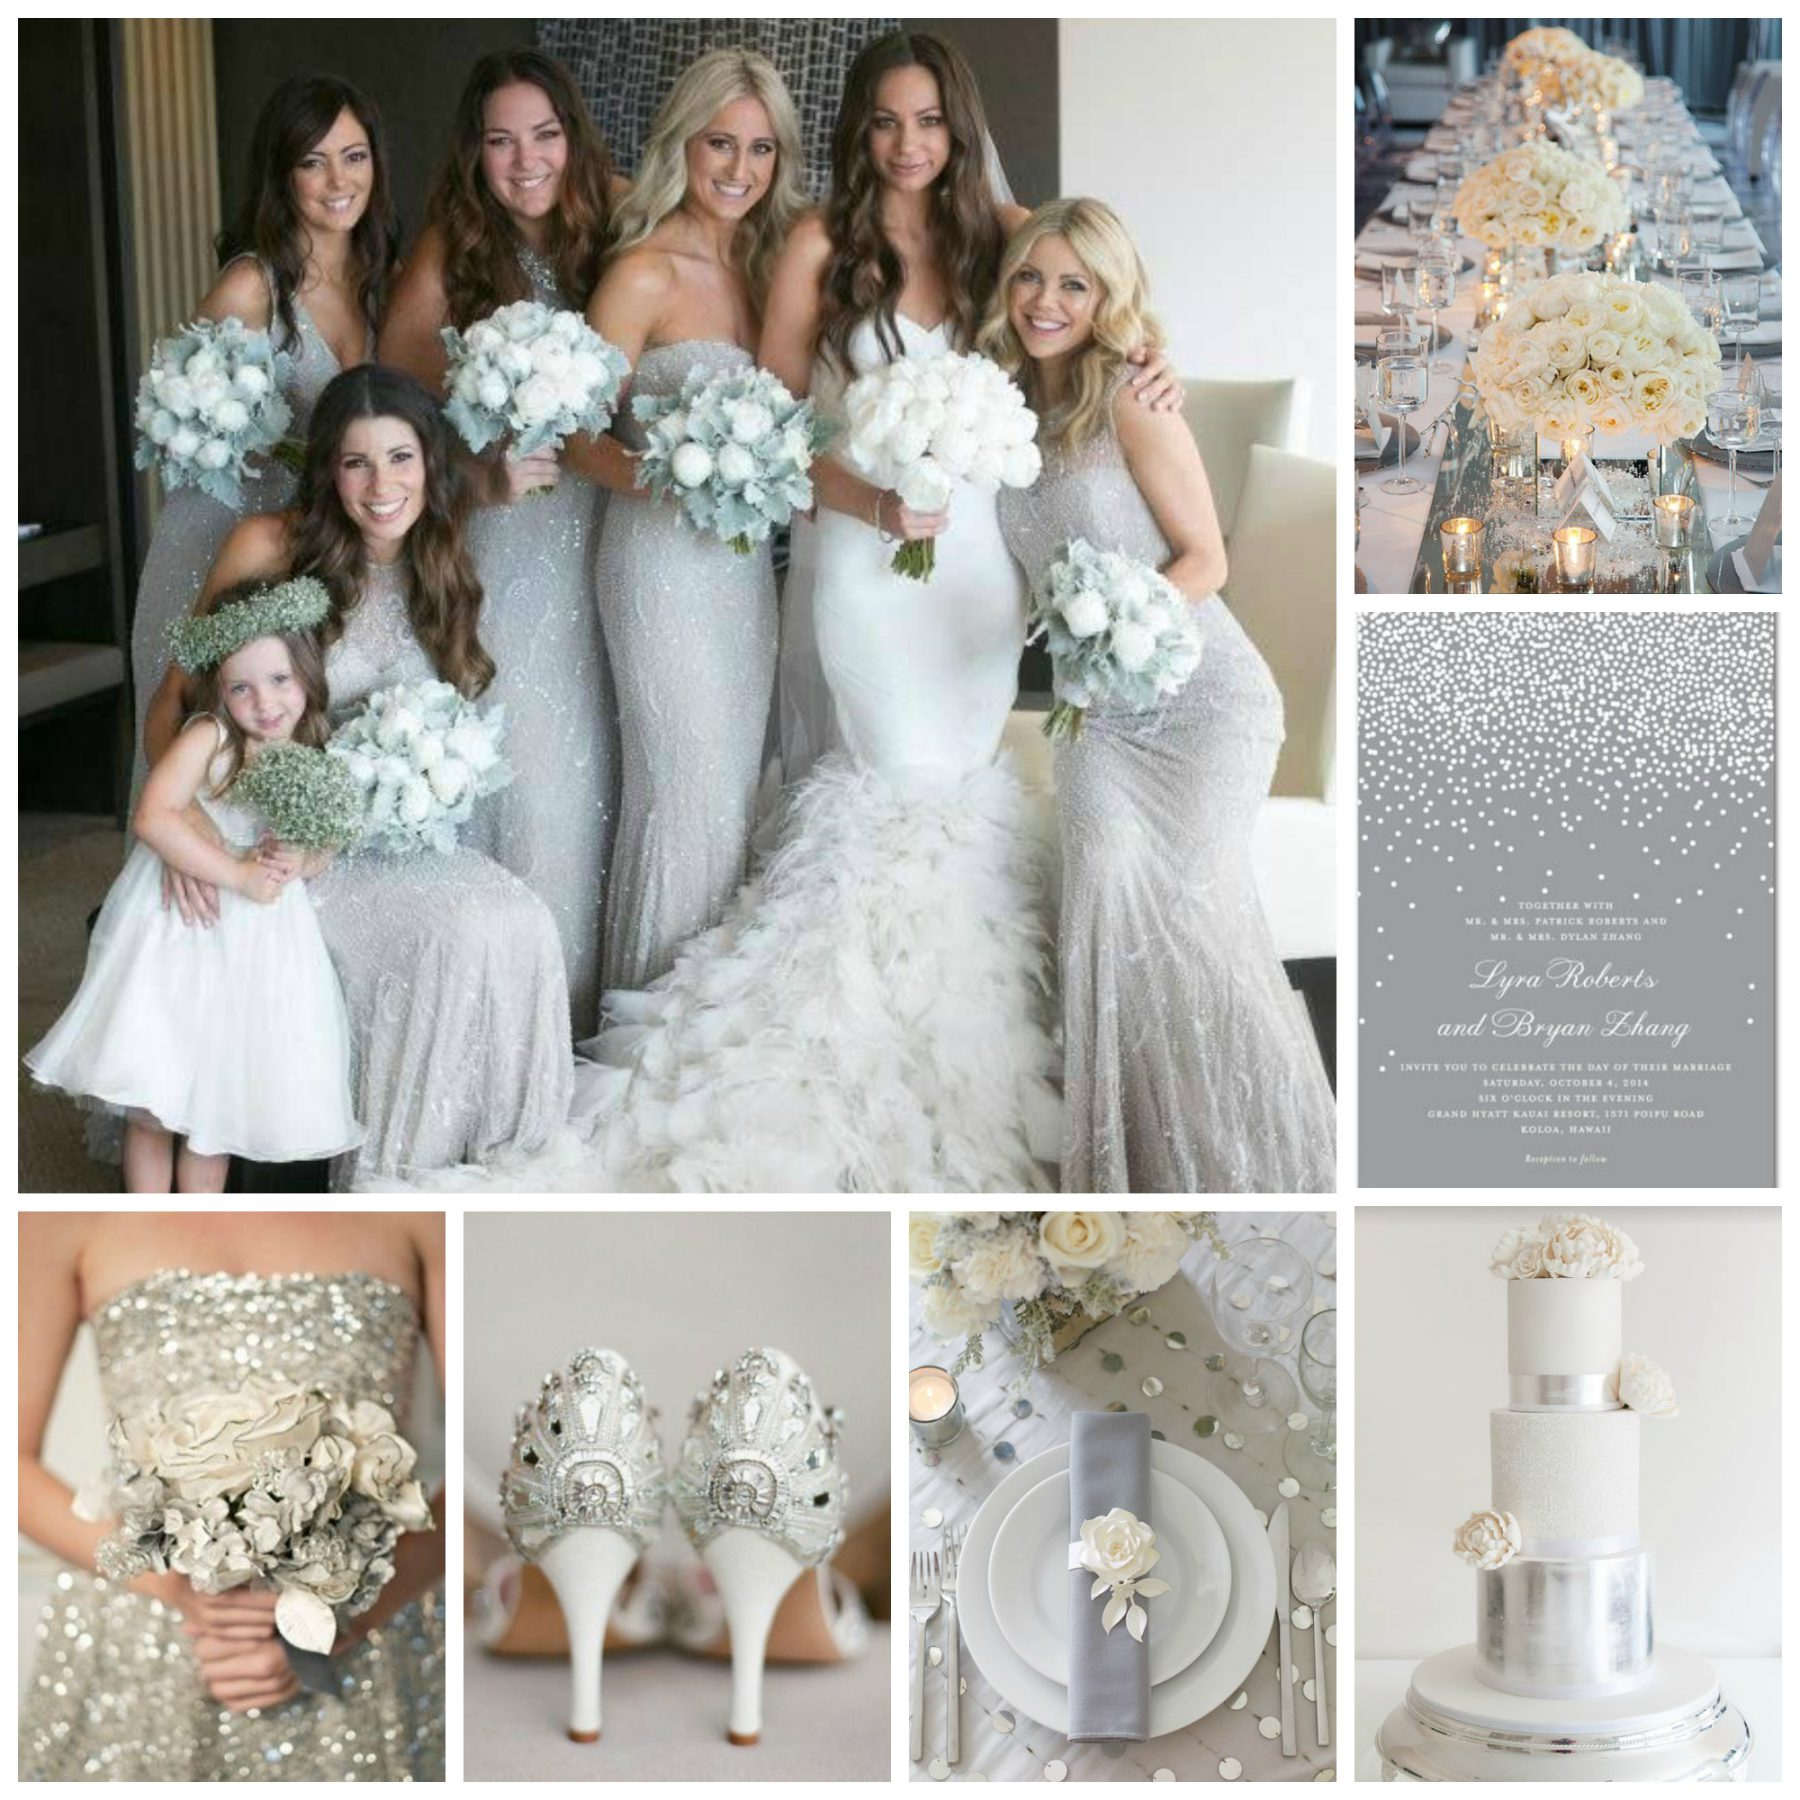 Wedding Ideas And Inspirations: Silver & White Wedding Inspiration